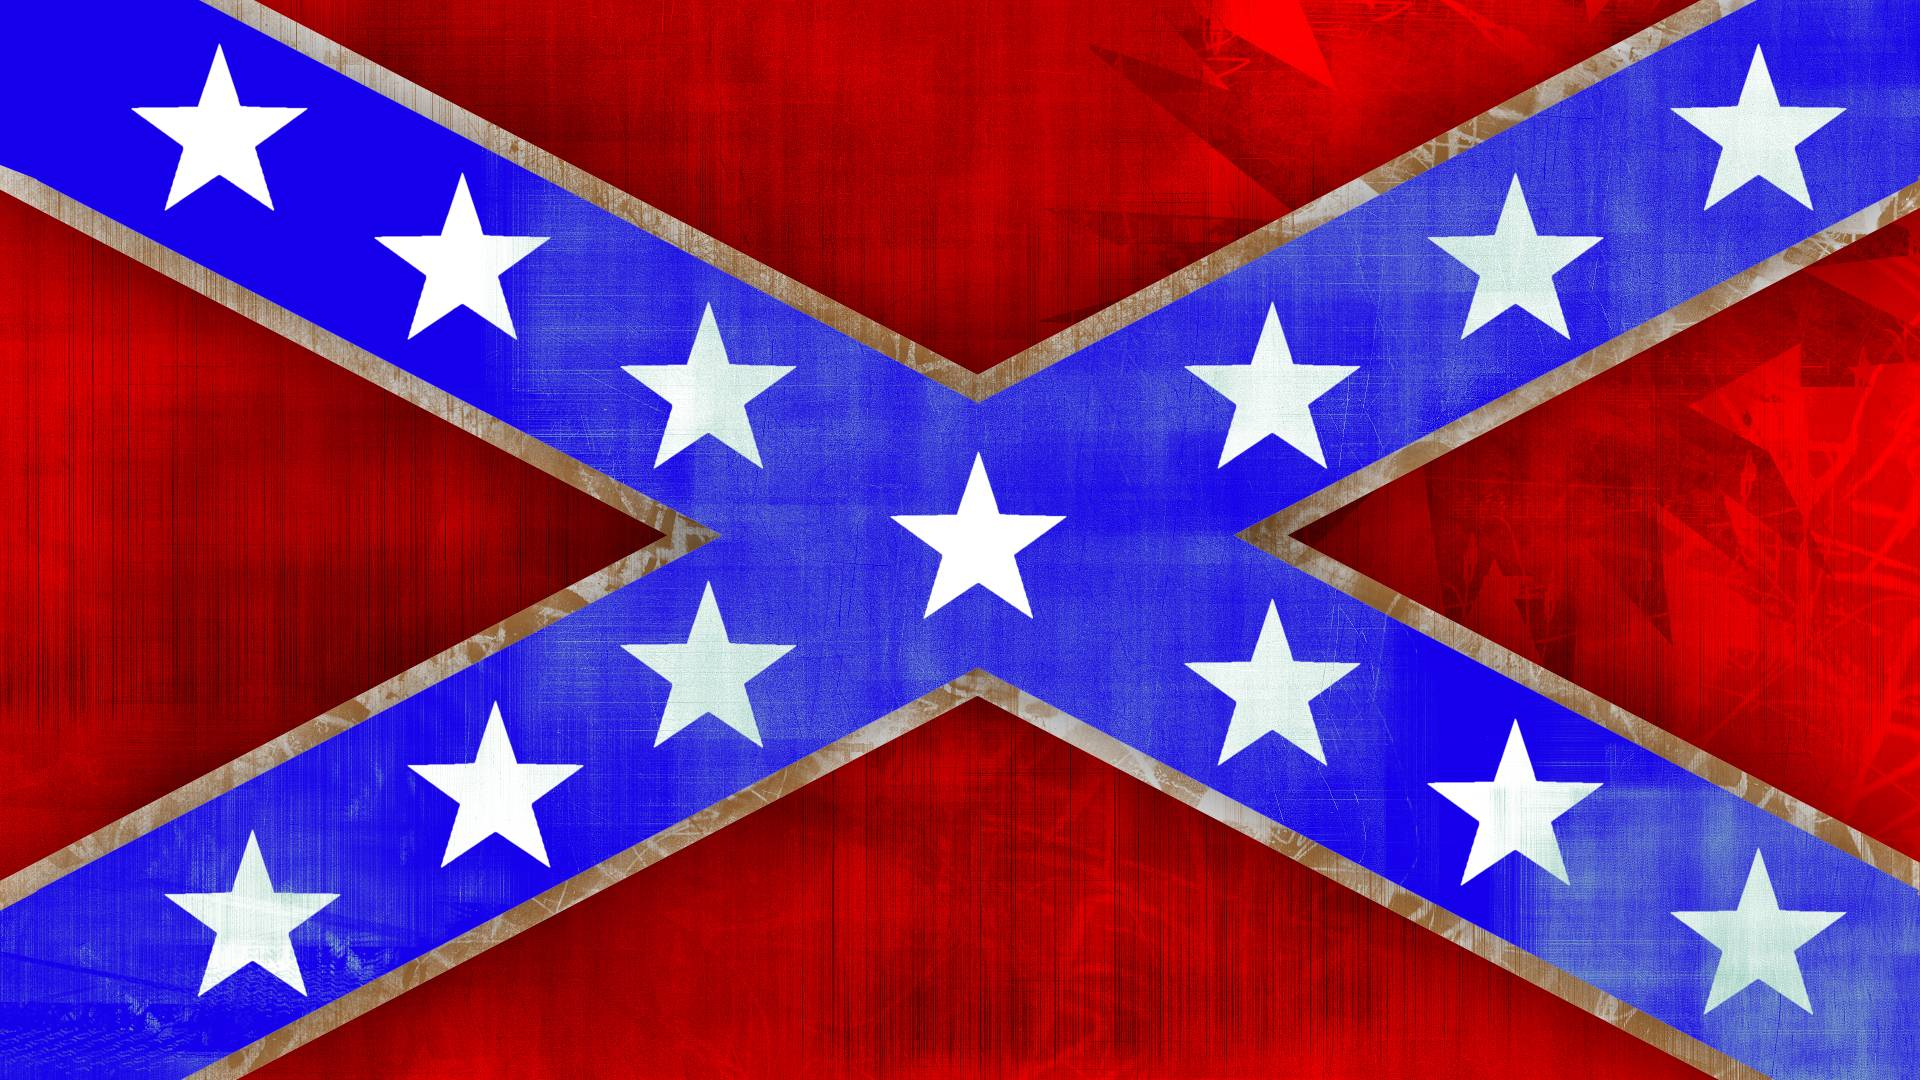 1024x768 Awesome Confederate Flag Wallpapers ✓ Labzada Wallpaper